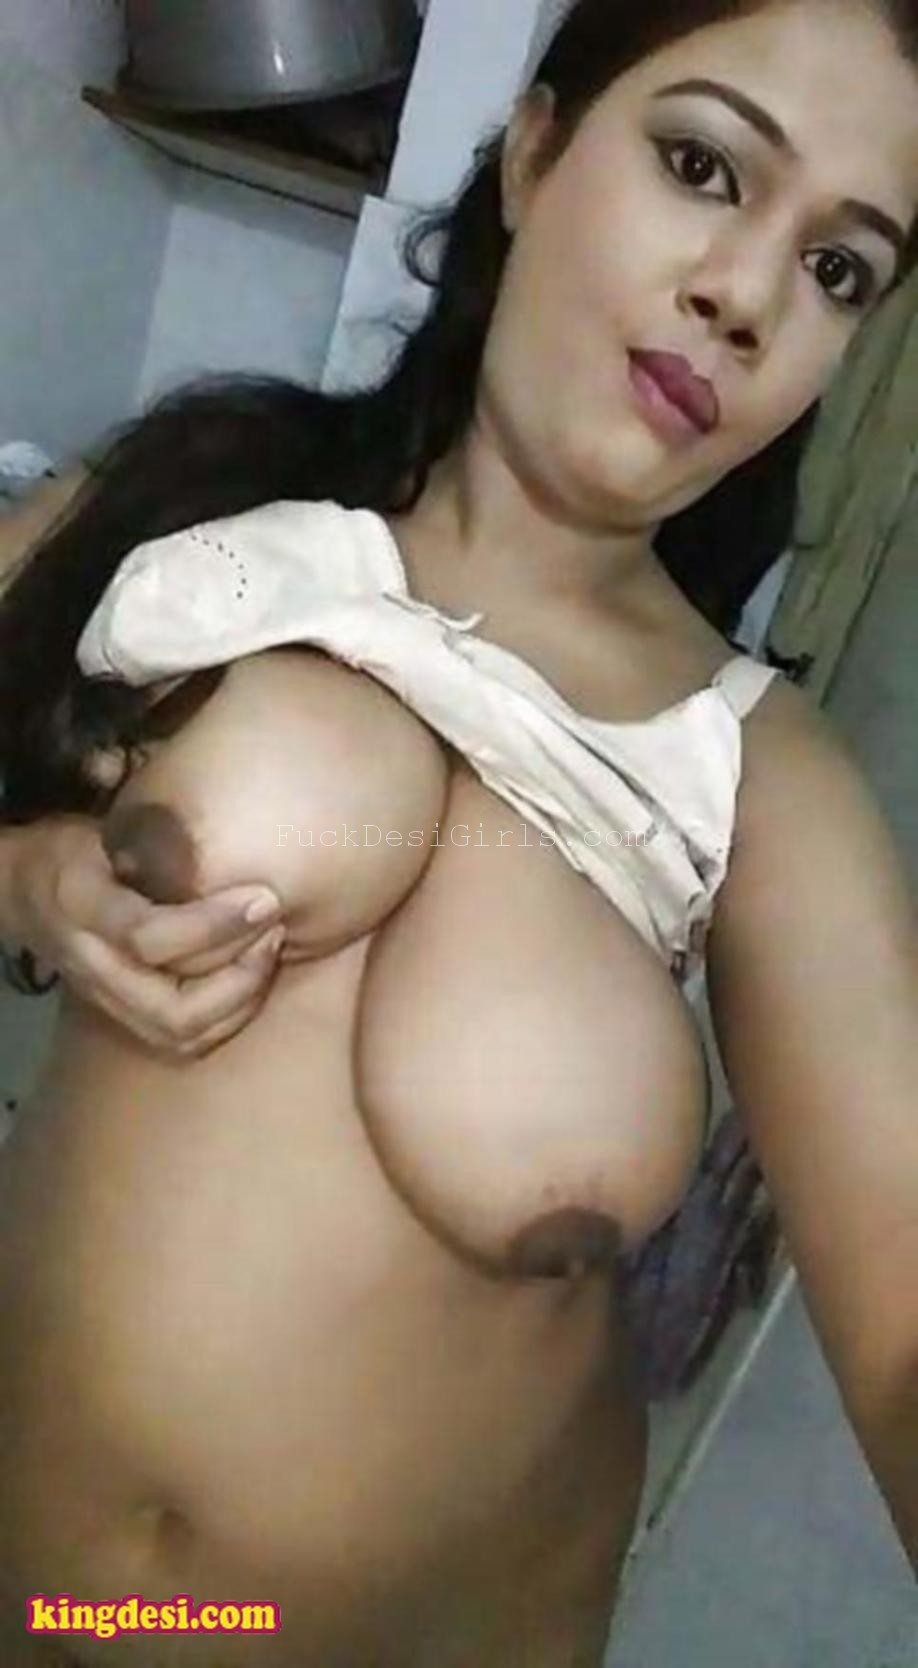 Hot arab girls fucking